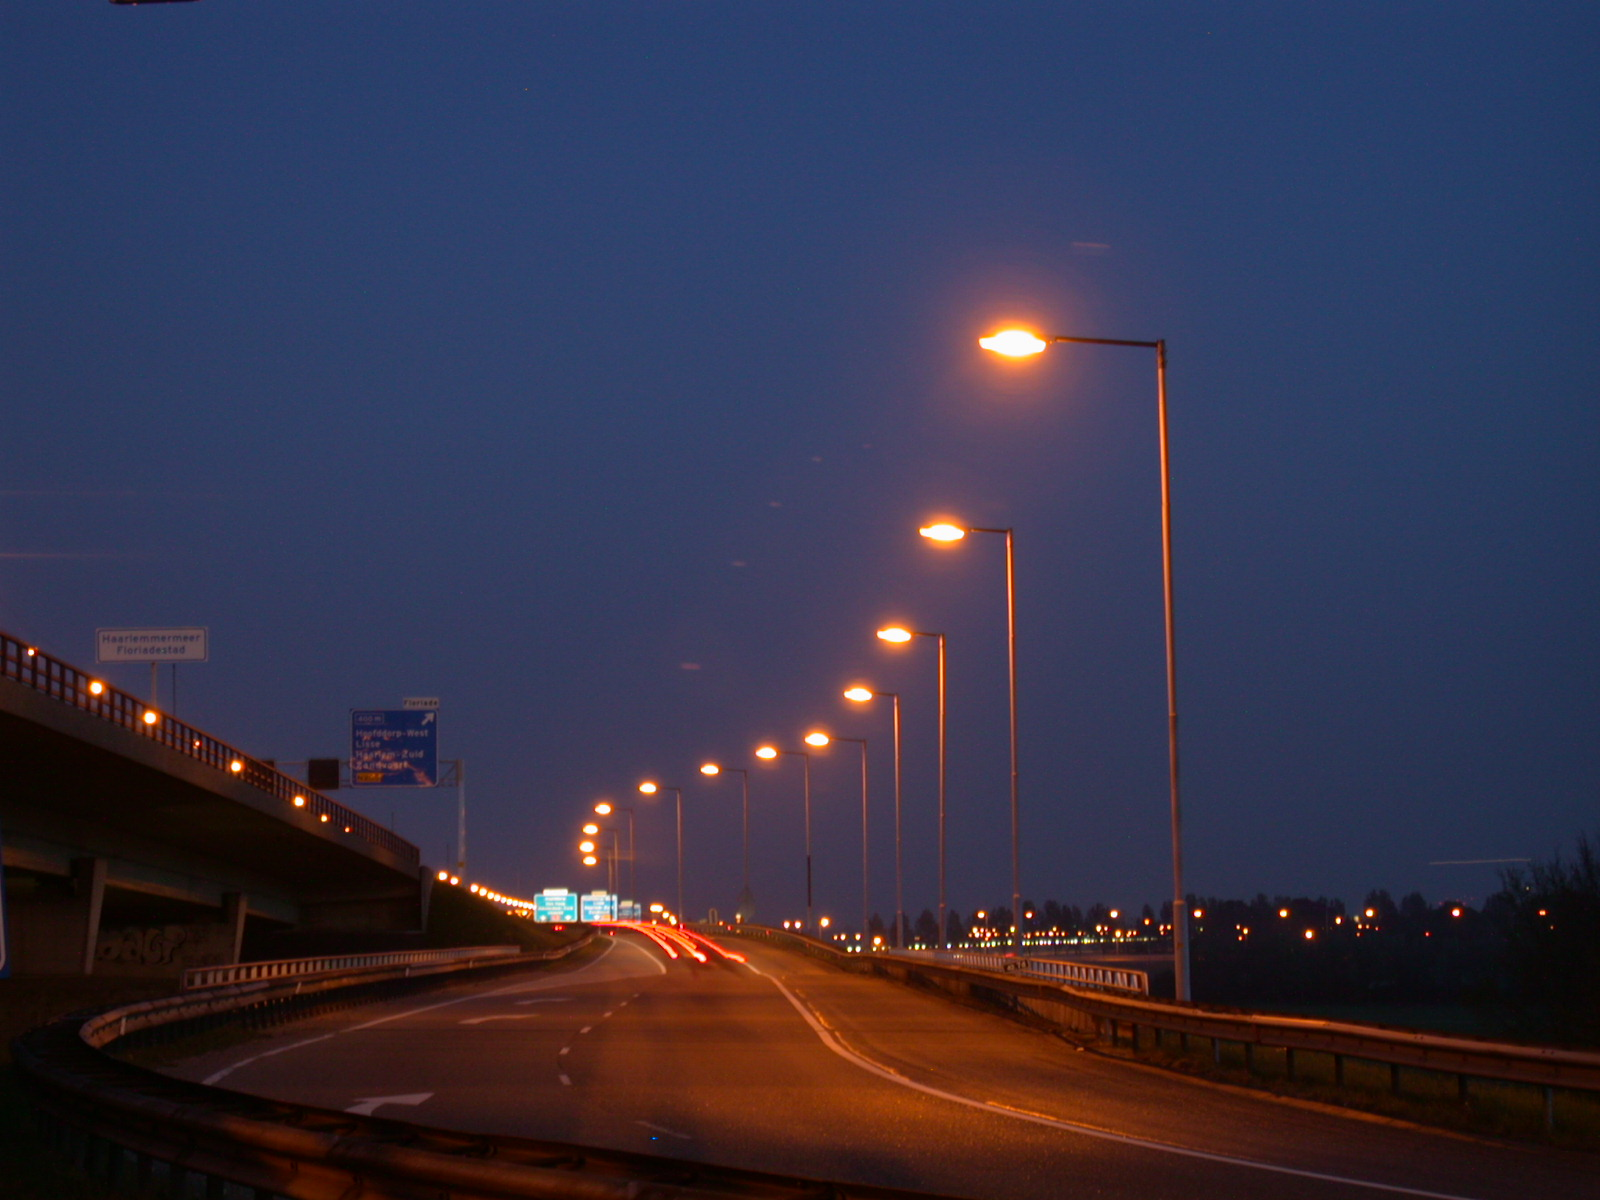 highway night taillights lightfx road nature landscapes roadscape traffic haarlem lamppost lampposts roadsign roadsigns